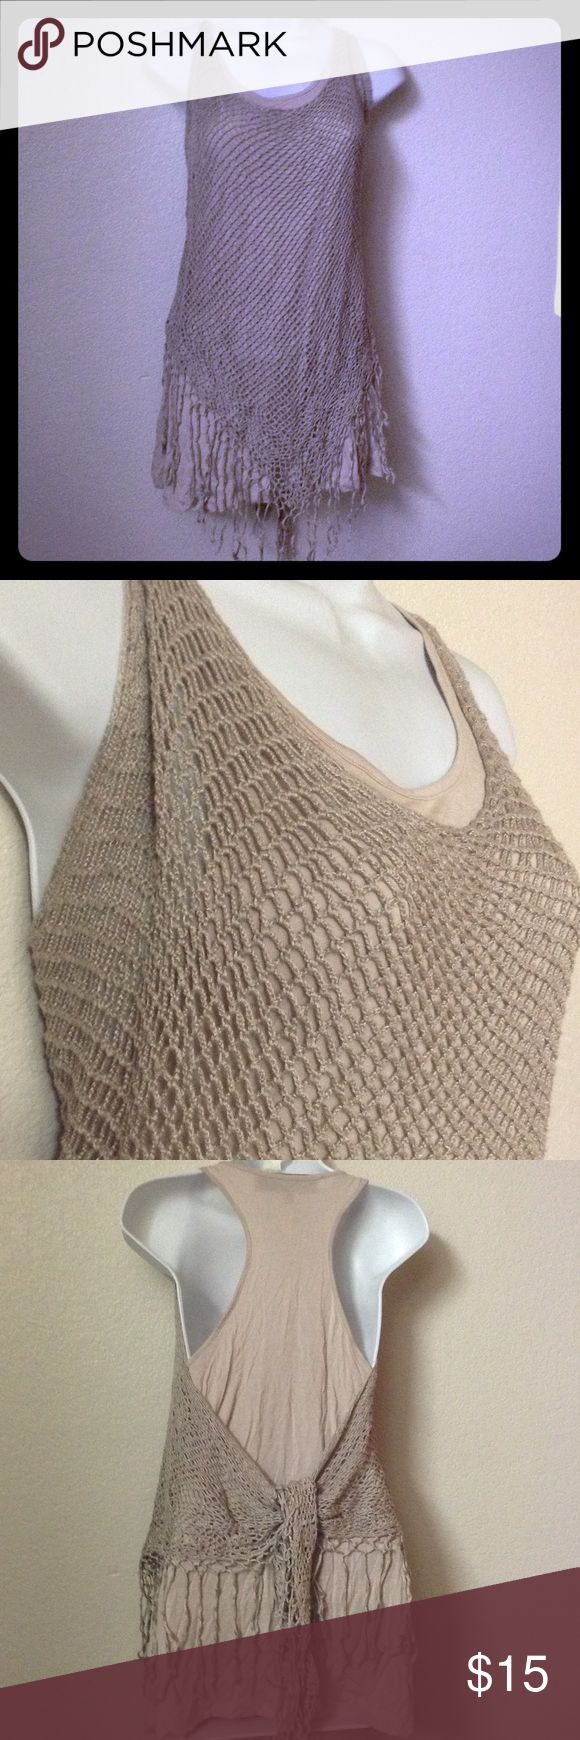 REMAIN Long Tank Top Crochet Fringe Knit Beige Beige Top stretch nice with a pair of jeans, can be worn on a nite out. Remain Tops Tank Tops